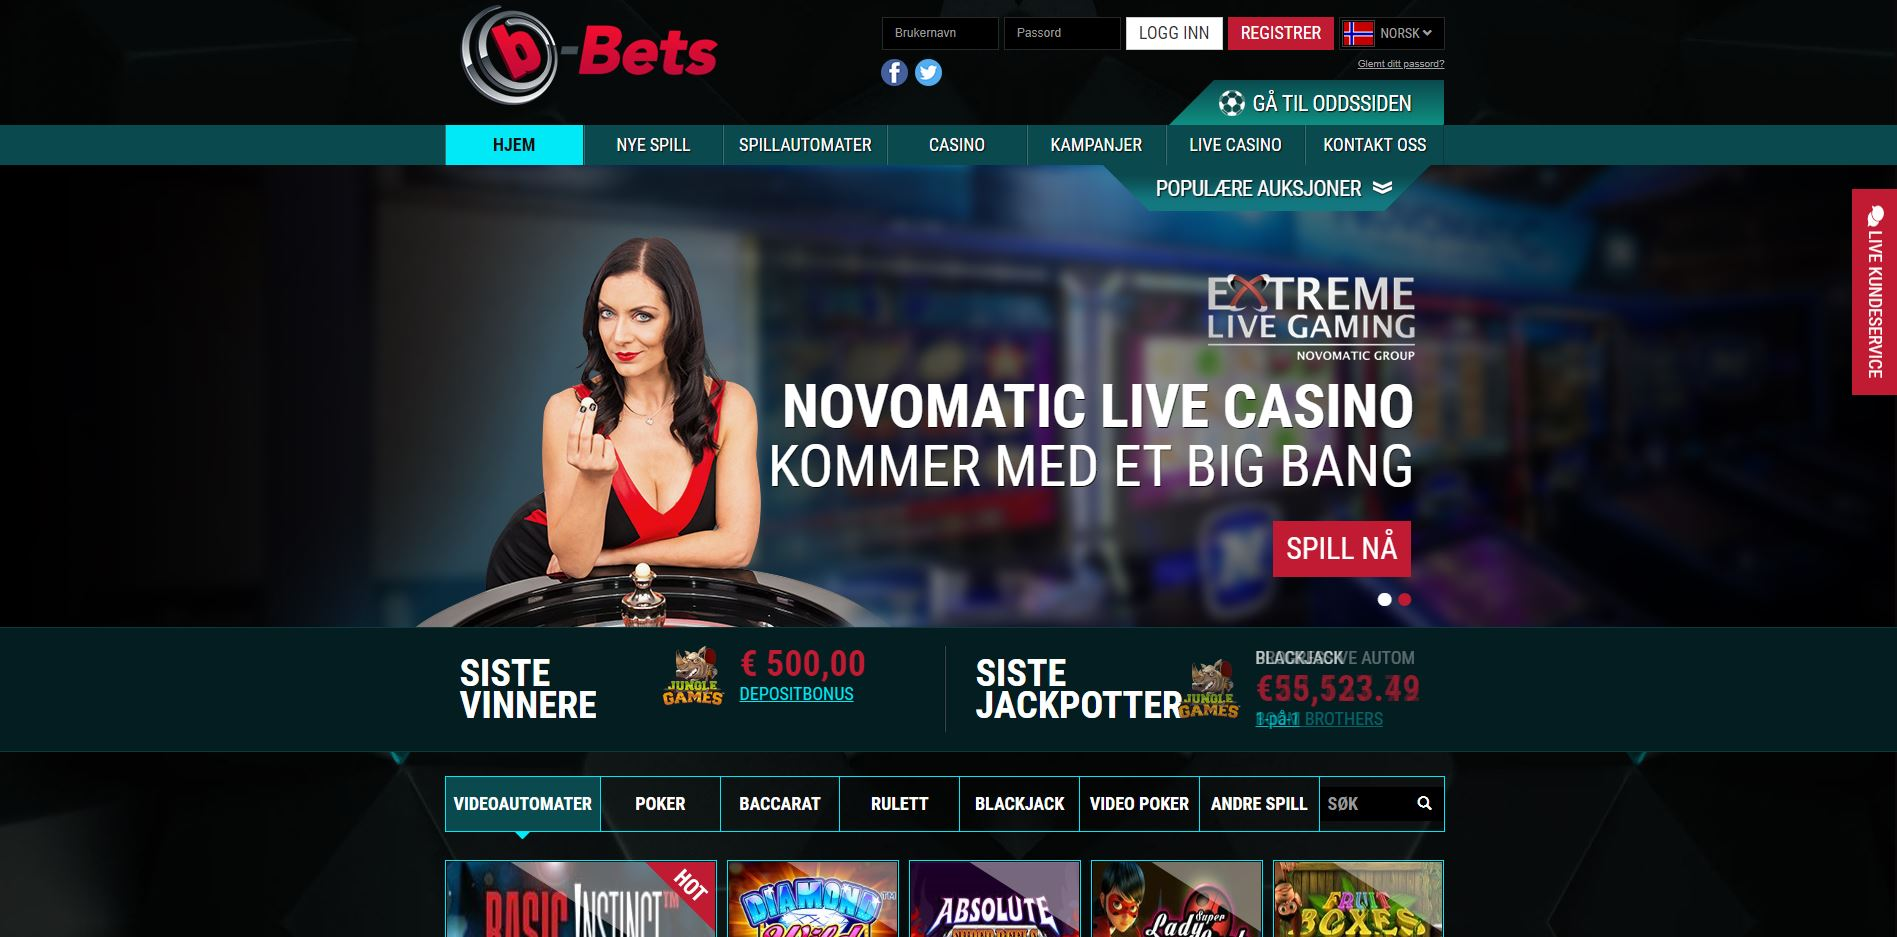 b-bets screenshot